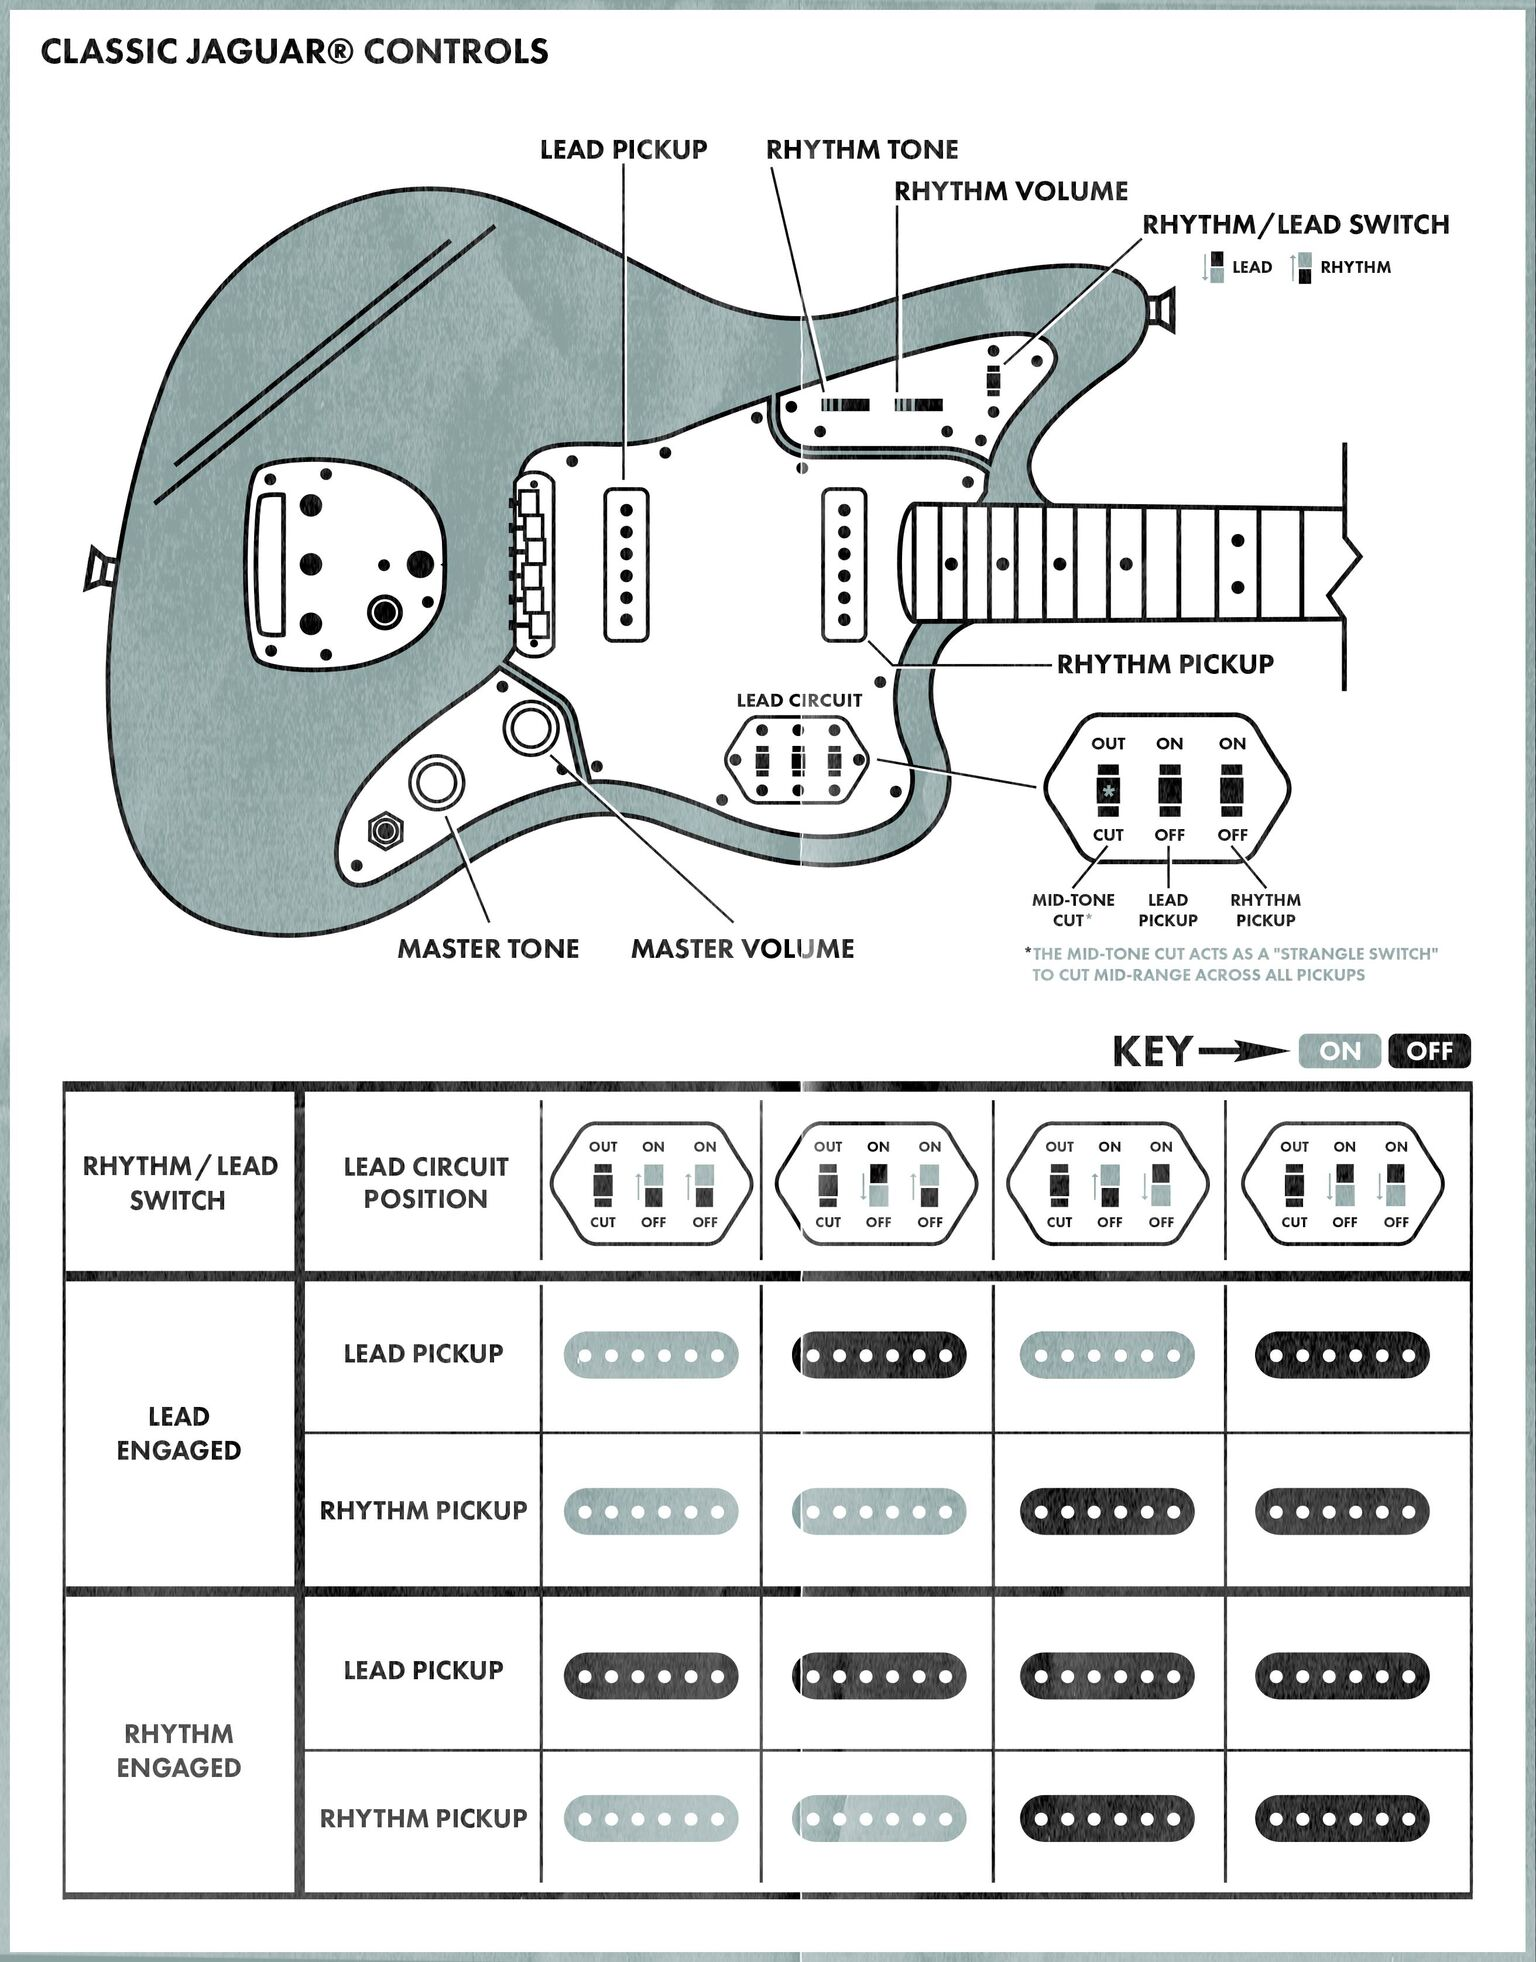 Jaguar Controls Explained Fender Comm Wiring Diagram For Control Switches